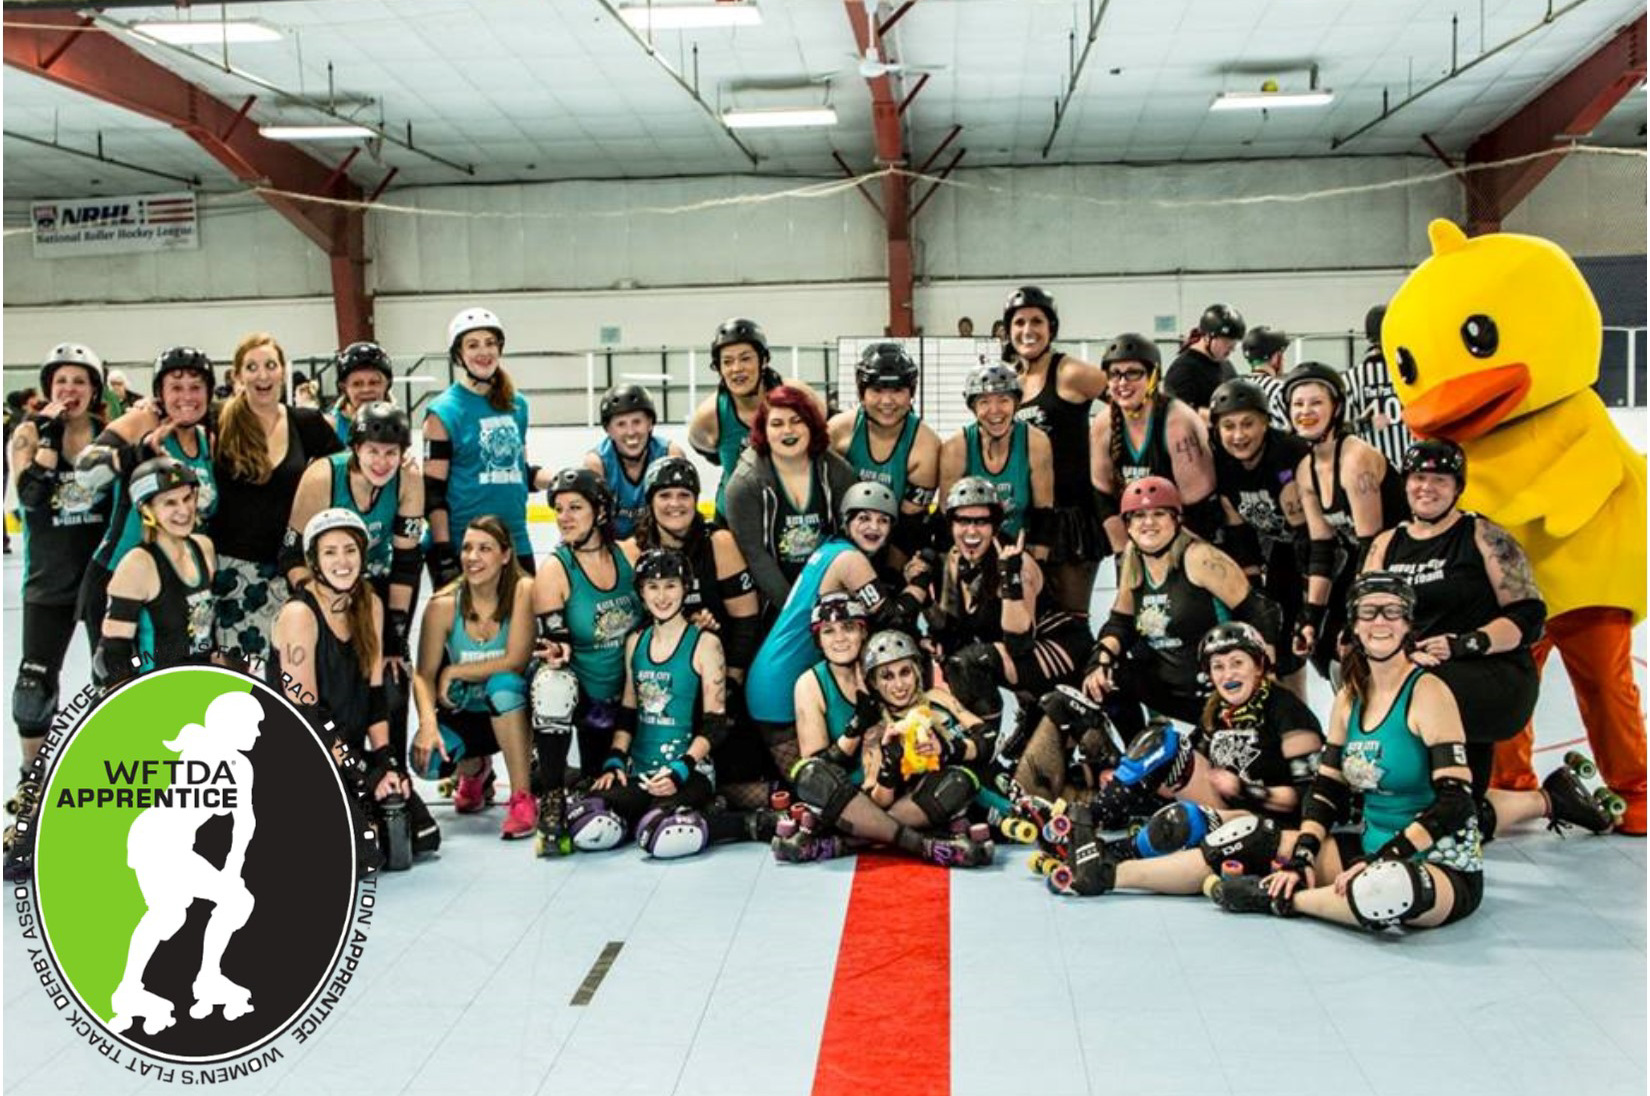 As of 2017, Bath City Roller Girls has been accepted to the WFTDA Apprentice Program. Photo by Patrice Iacovoni